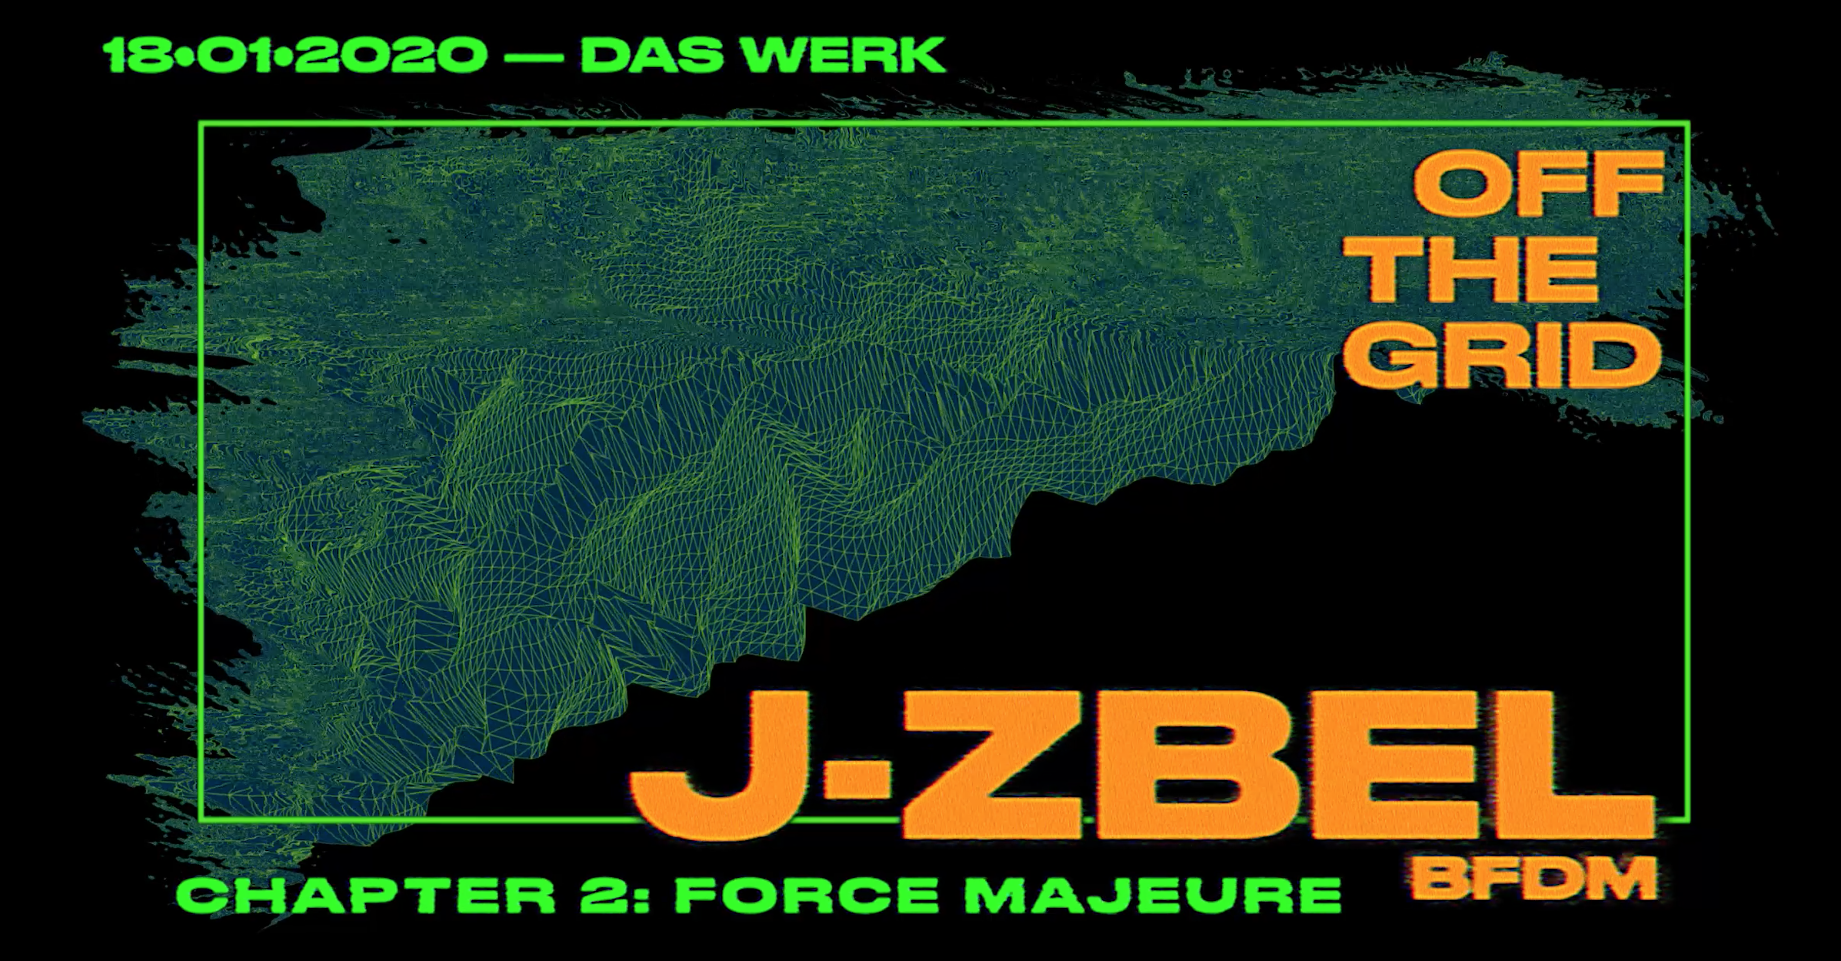 OFF THE GRID - Chapter 2: Force Majeure w/ J-ZBEL am 18. January 2020 @ dasWerk.